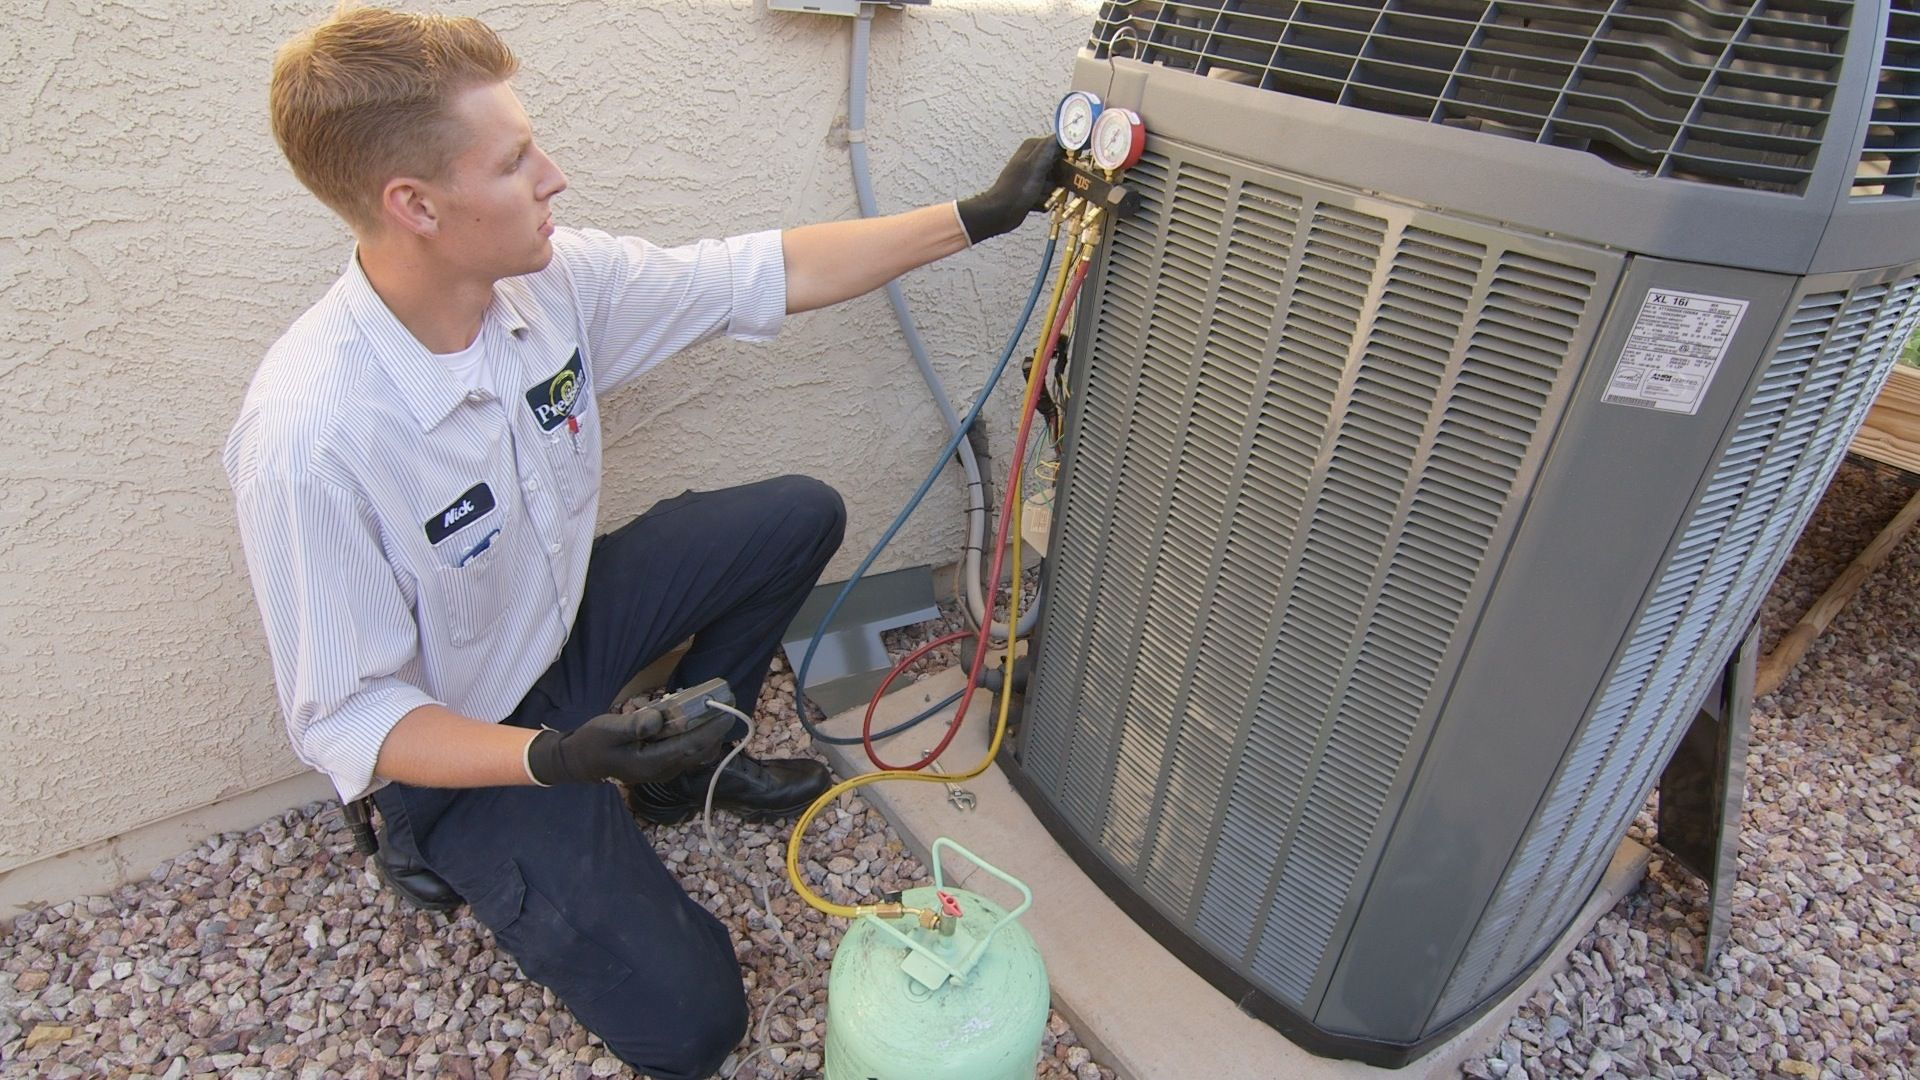 Air conditioning services prices are available at less